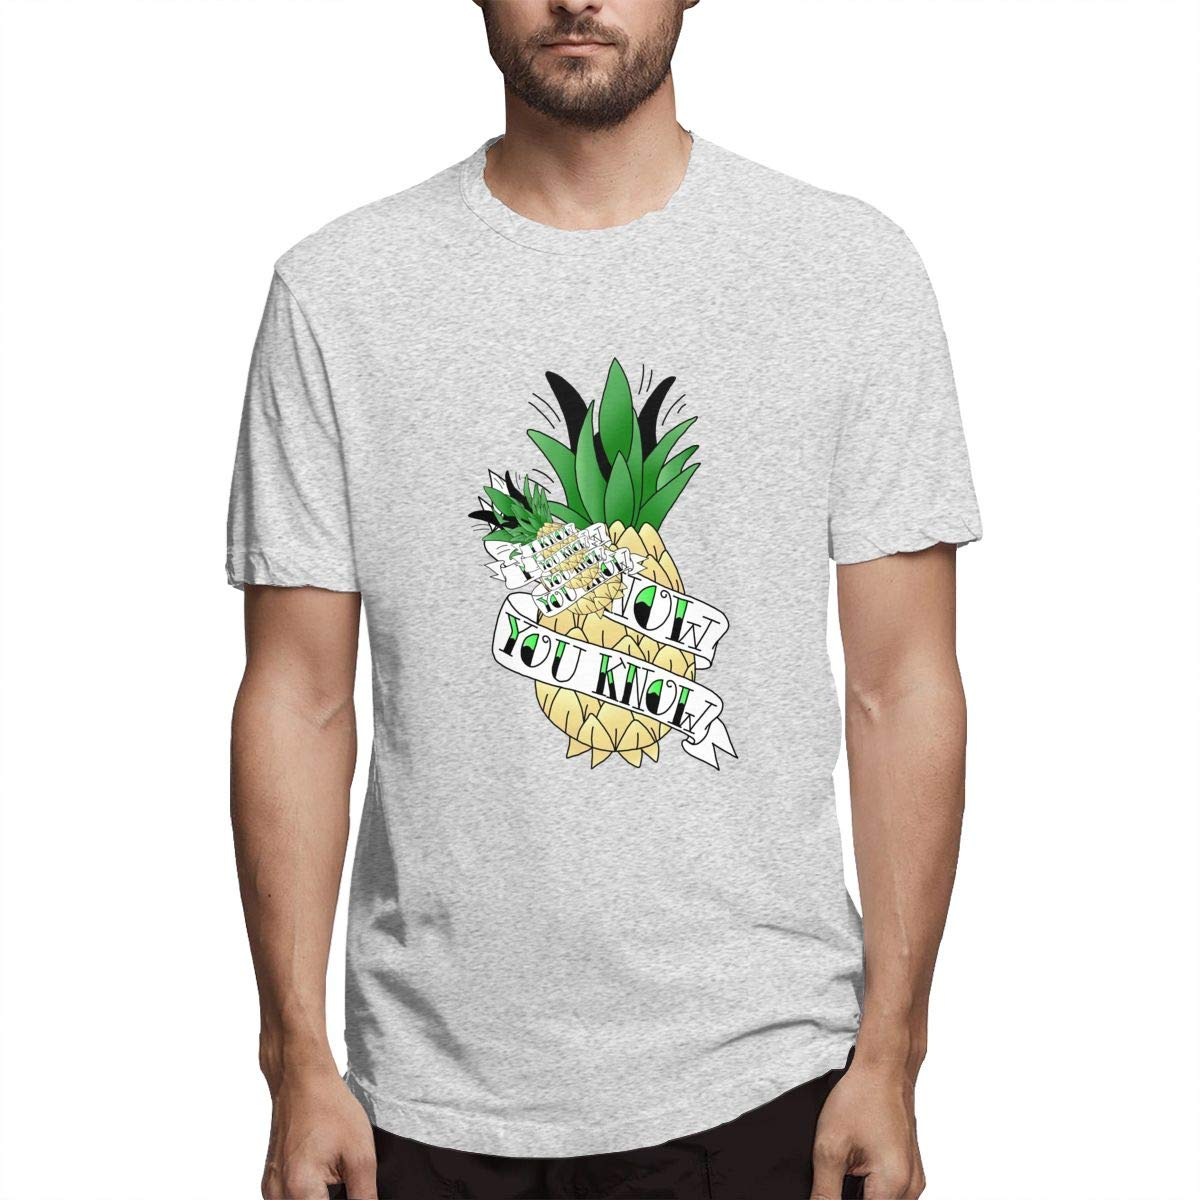 Sy Compact S Psych Pineapple Gym Training Short Sleeve T Shirt 6326